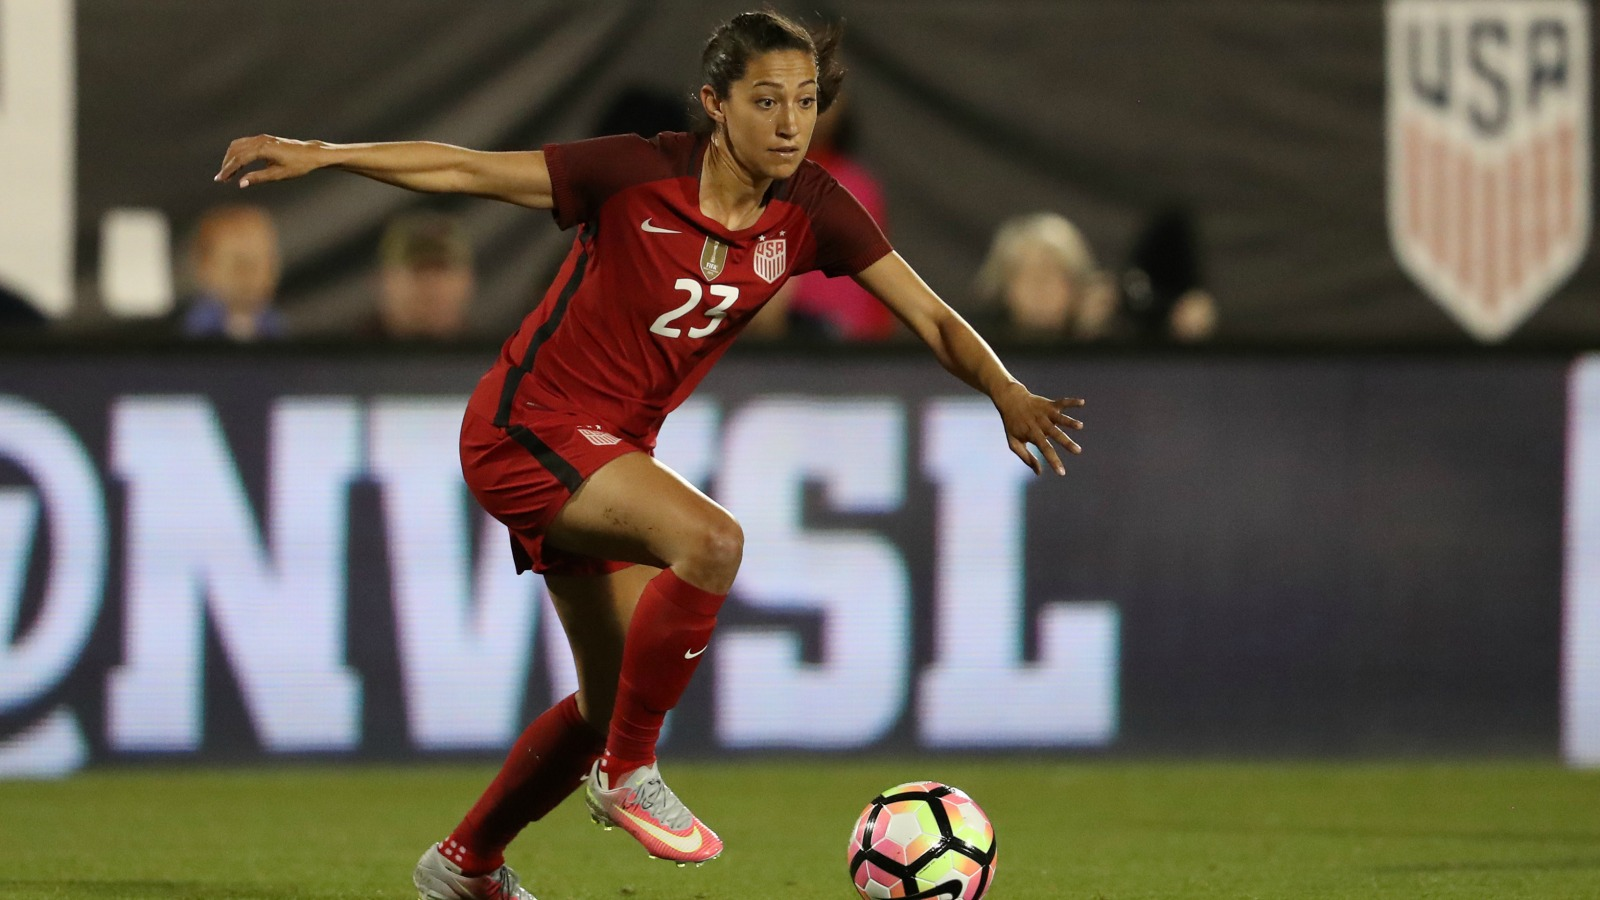 051017-USWNT-Christen-Press